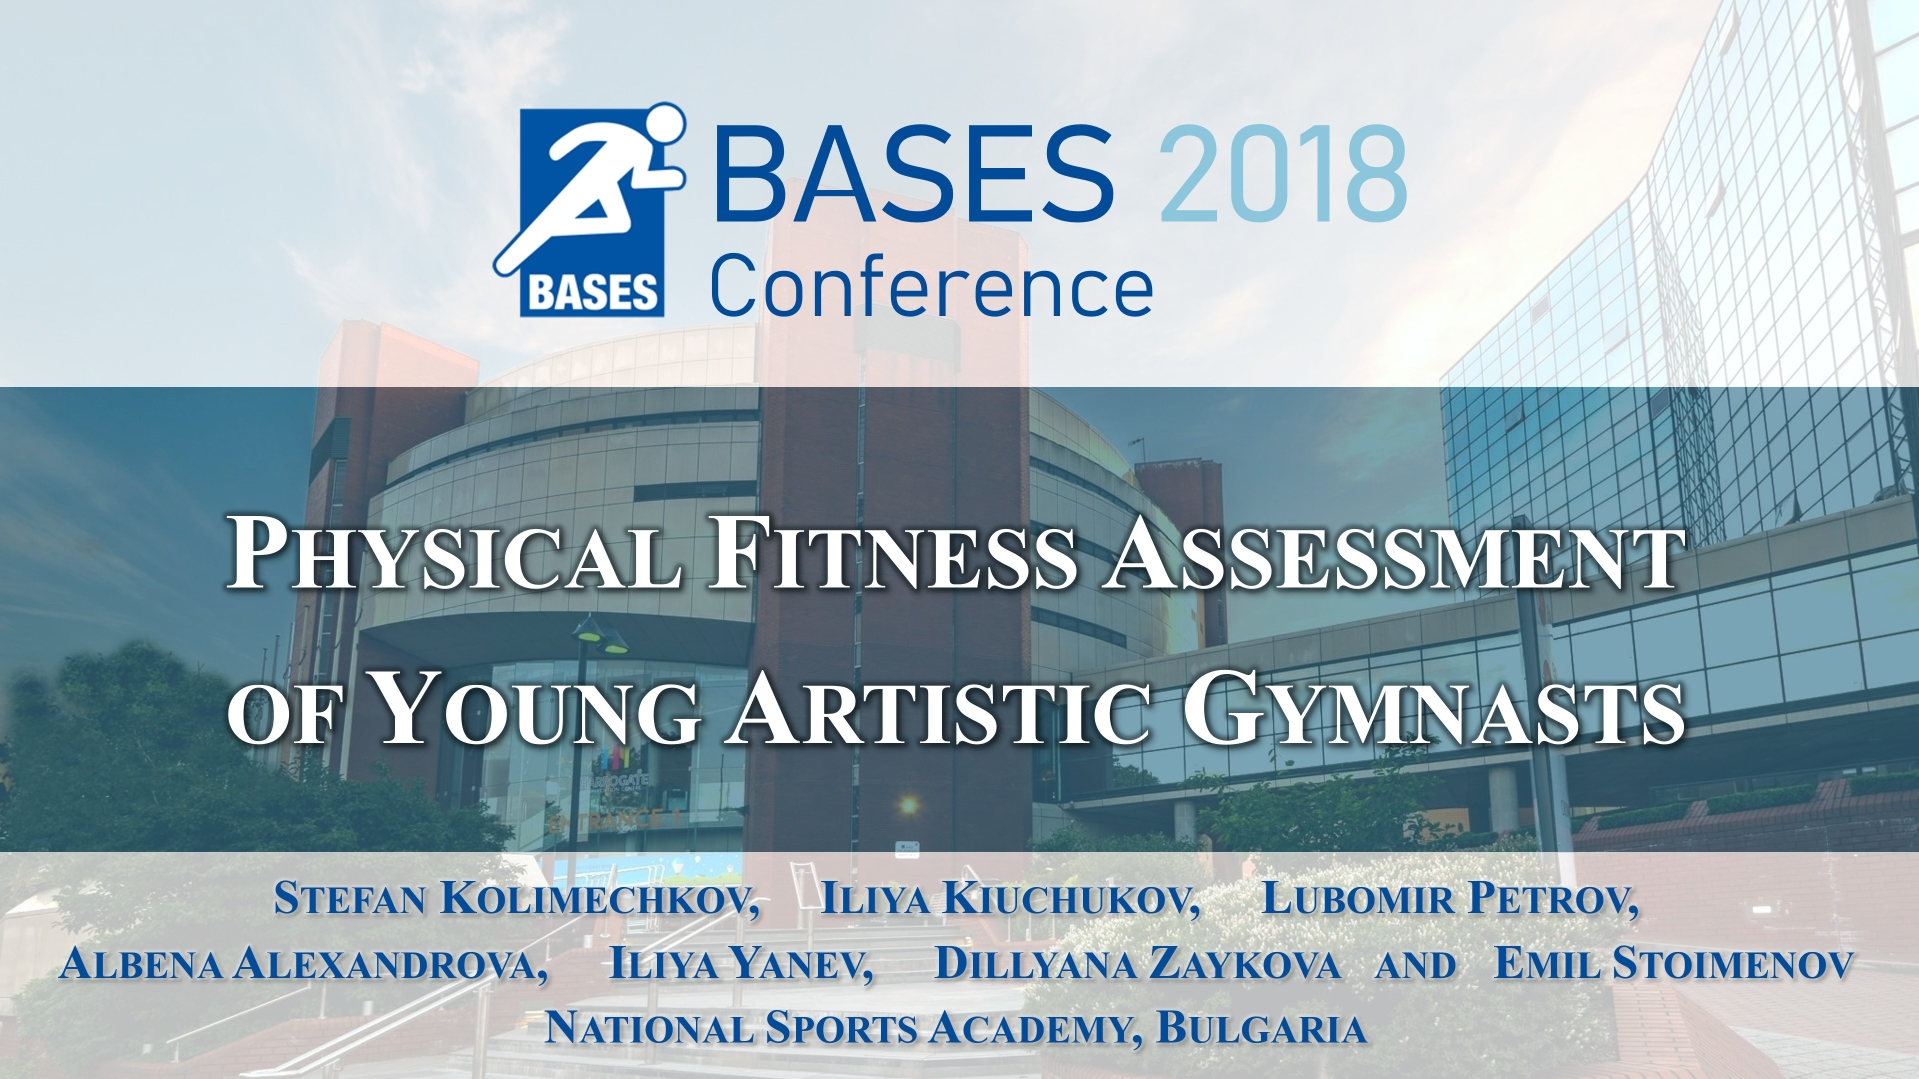 Physical fitness assessment of young artistic gymnasts at the BASES Conference 2018